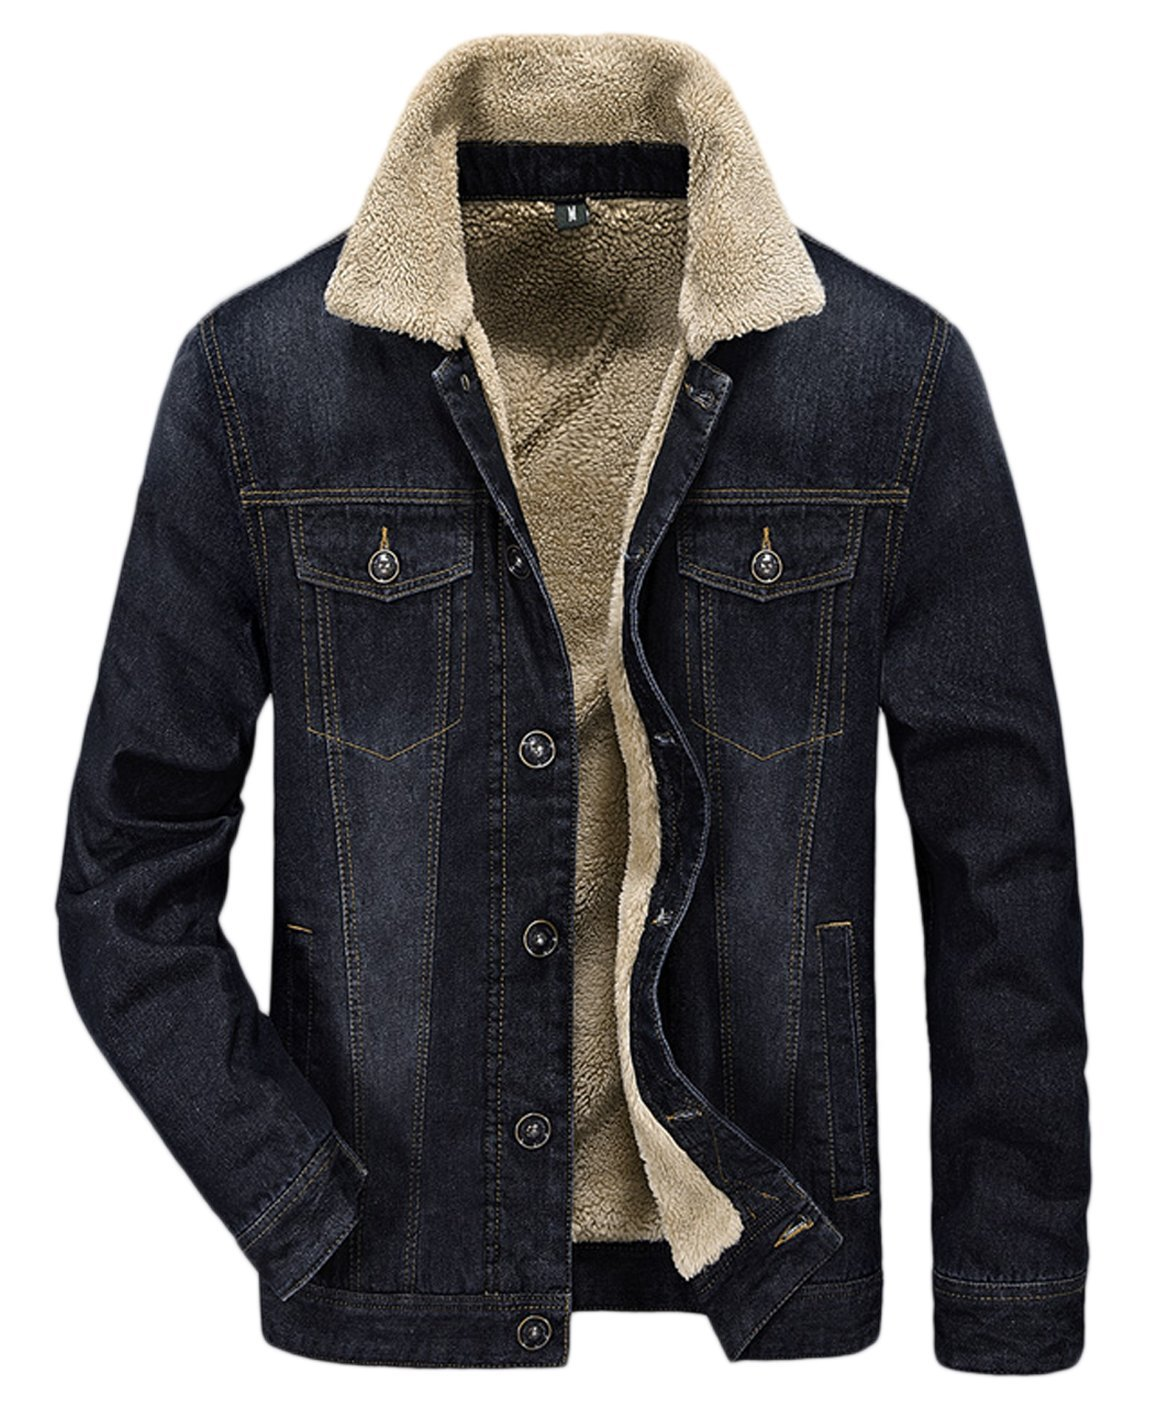 HOWON Men's Plus Cotton Warm Fur Collar Sherpa Lined Denim Jacket Button Down Classy Casual Quilted Jeans Coats Outwear Black S